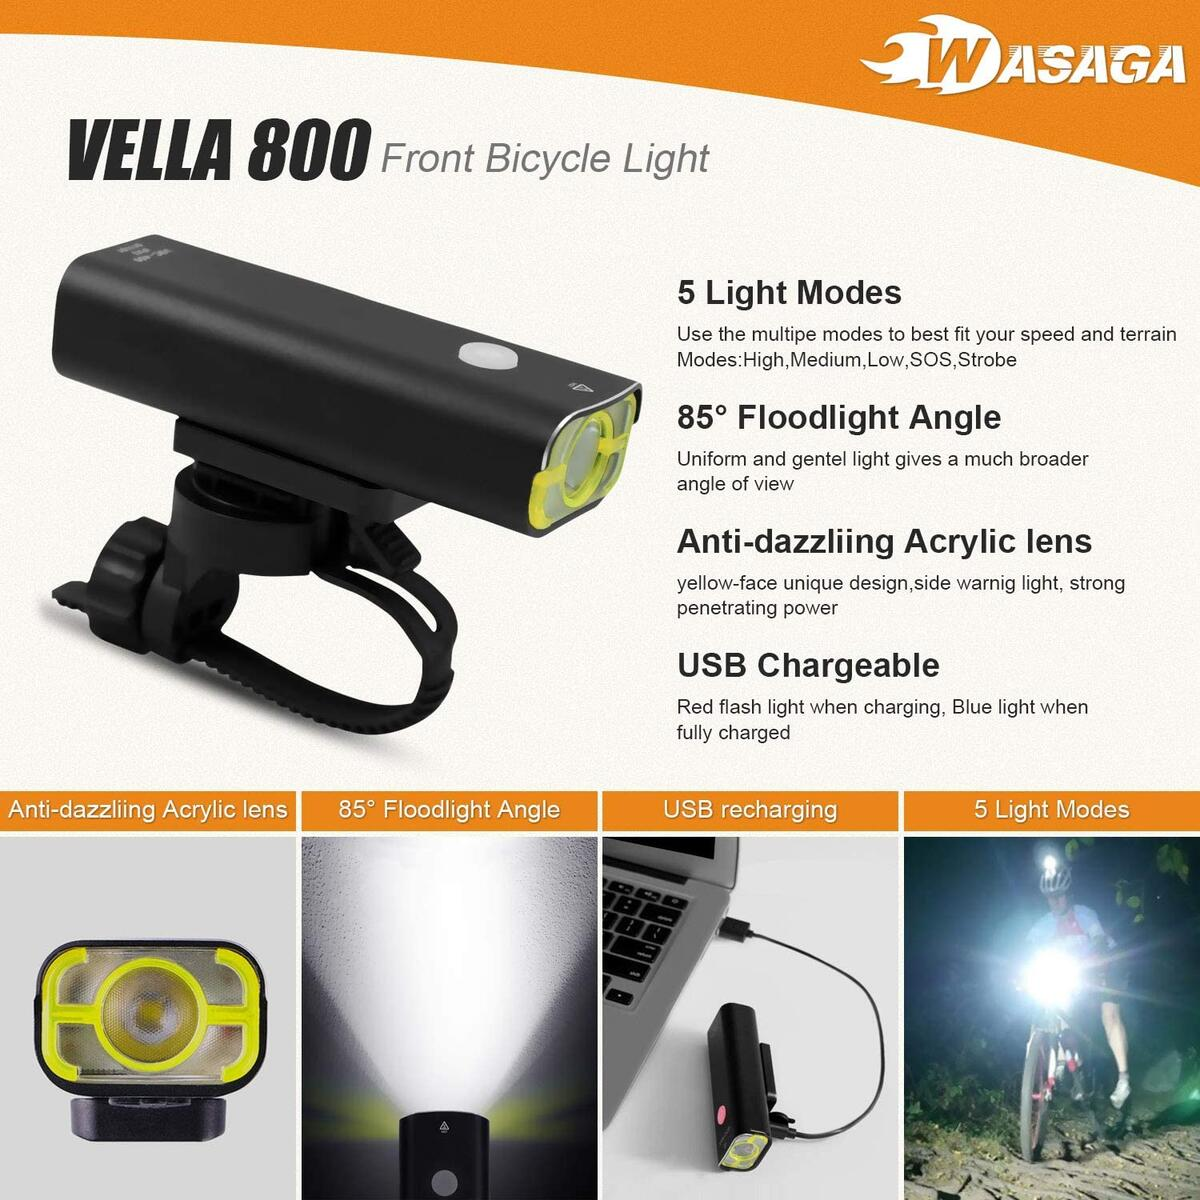 WASAGA Vella 800 Bike Light Front and Back Bicycle Lights USB Headlight & Tail Lights for Commuters, Road Cyclists & Mountain Bikers